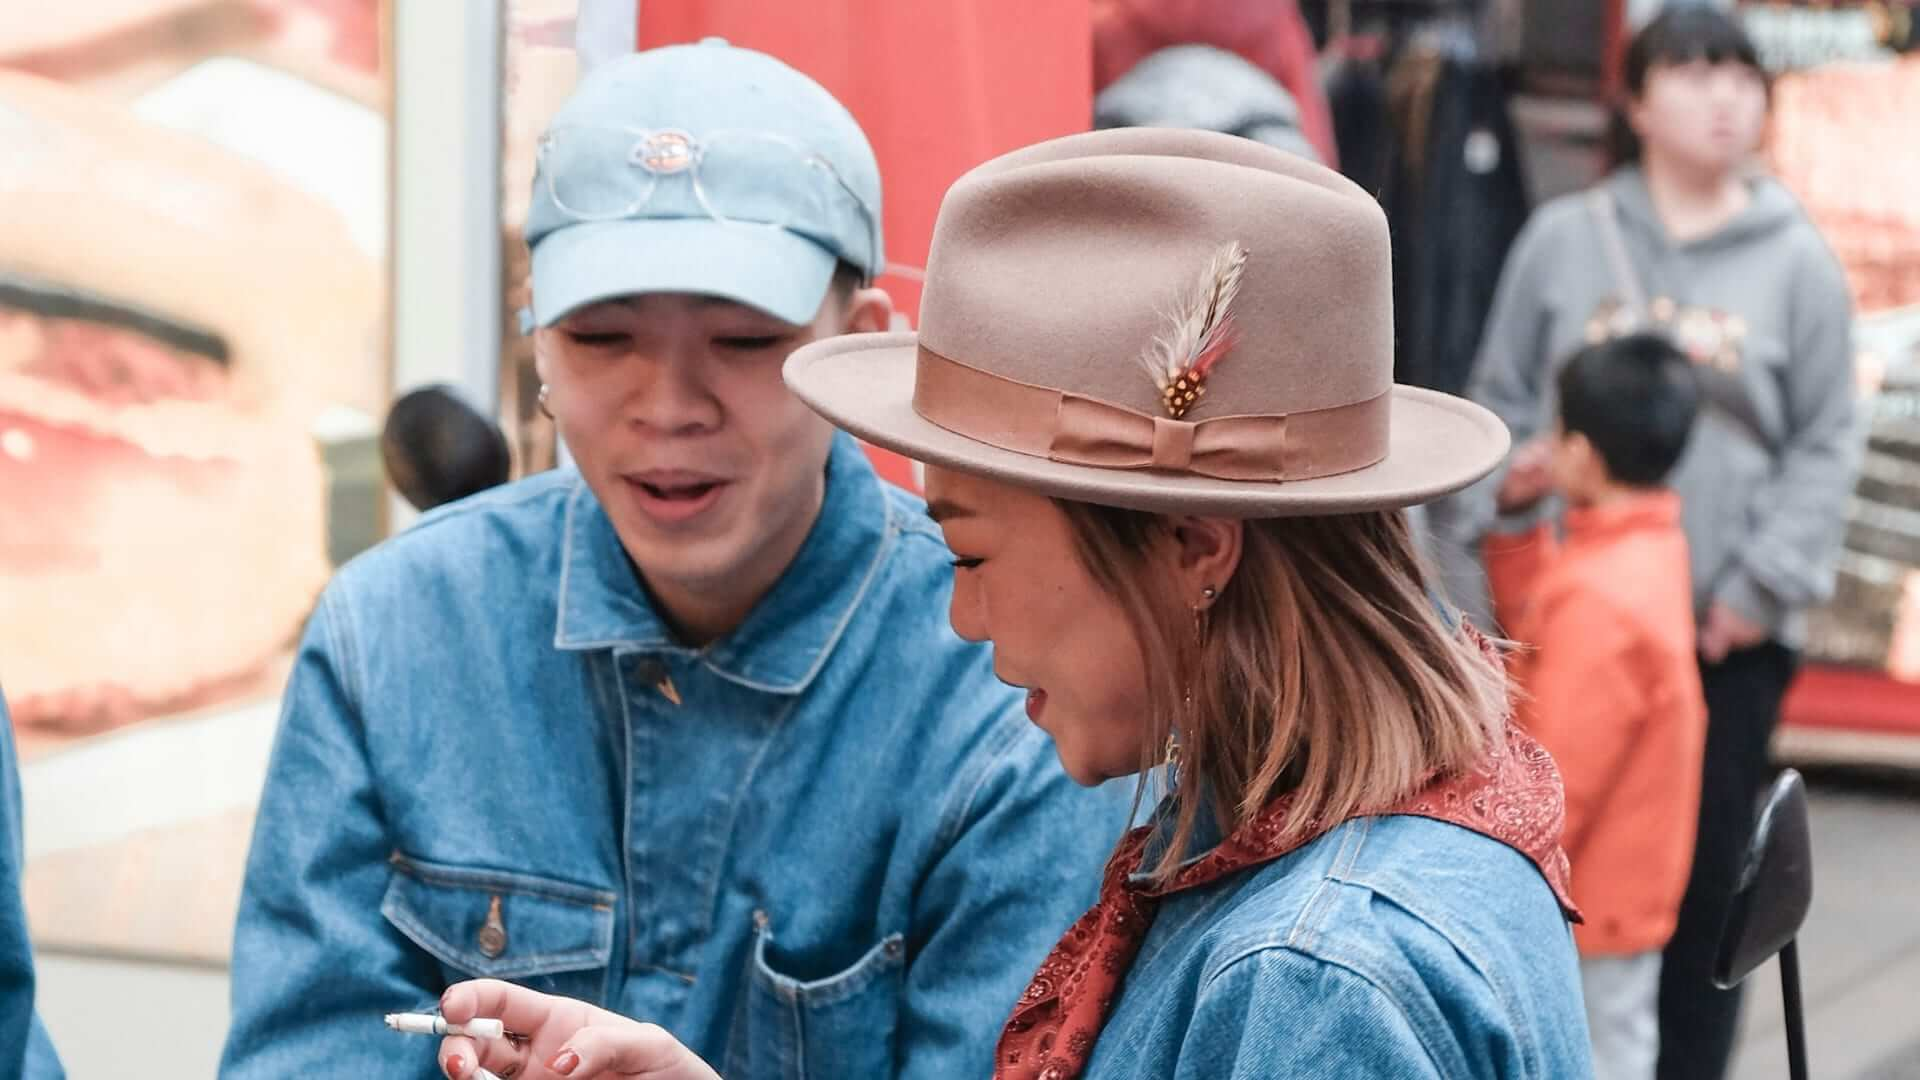 Two girls wearing denim jackets and hats are talking to eachother and laughing in Taiwan.